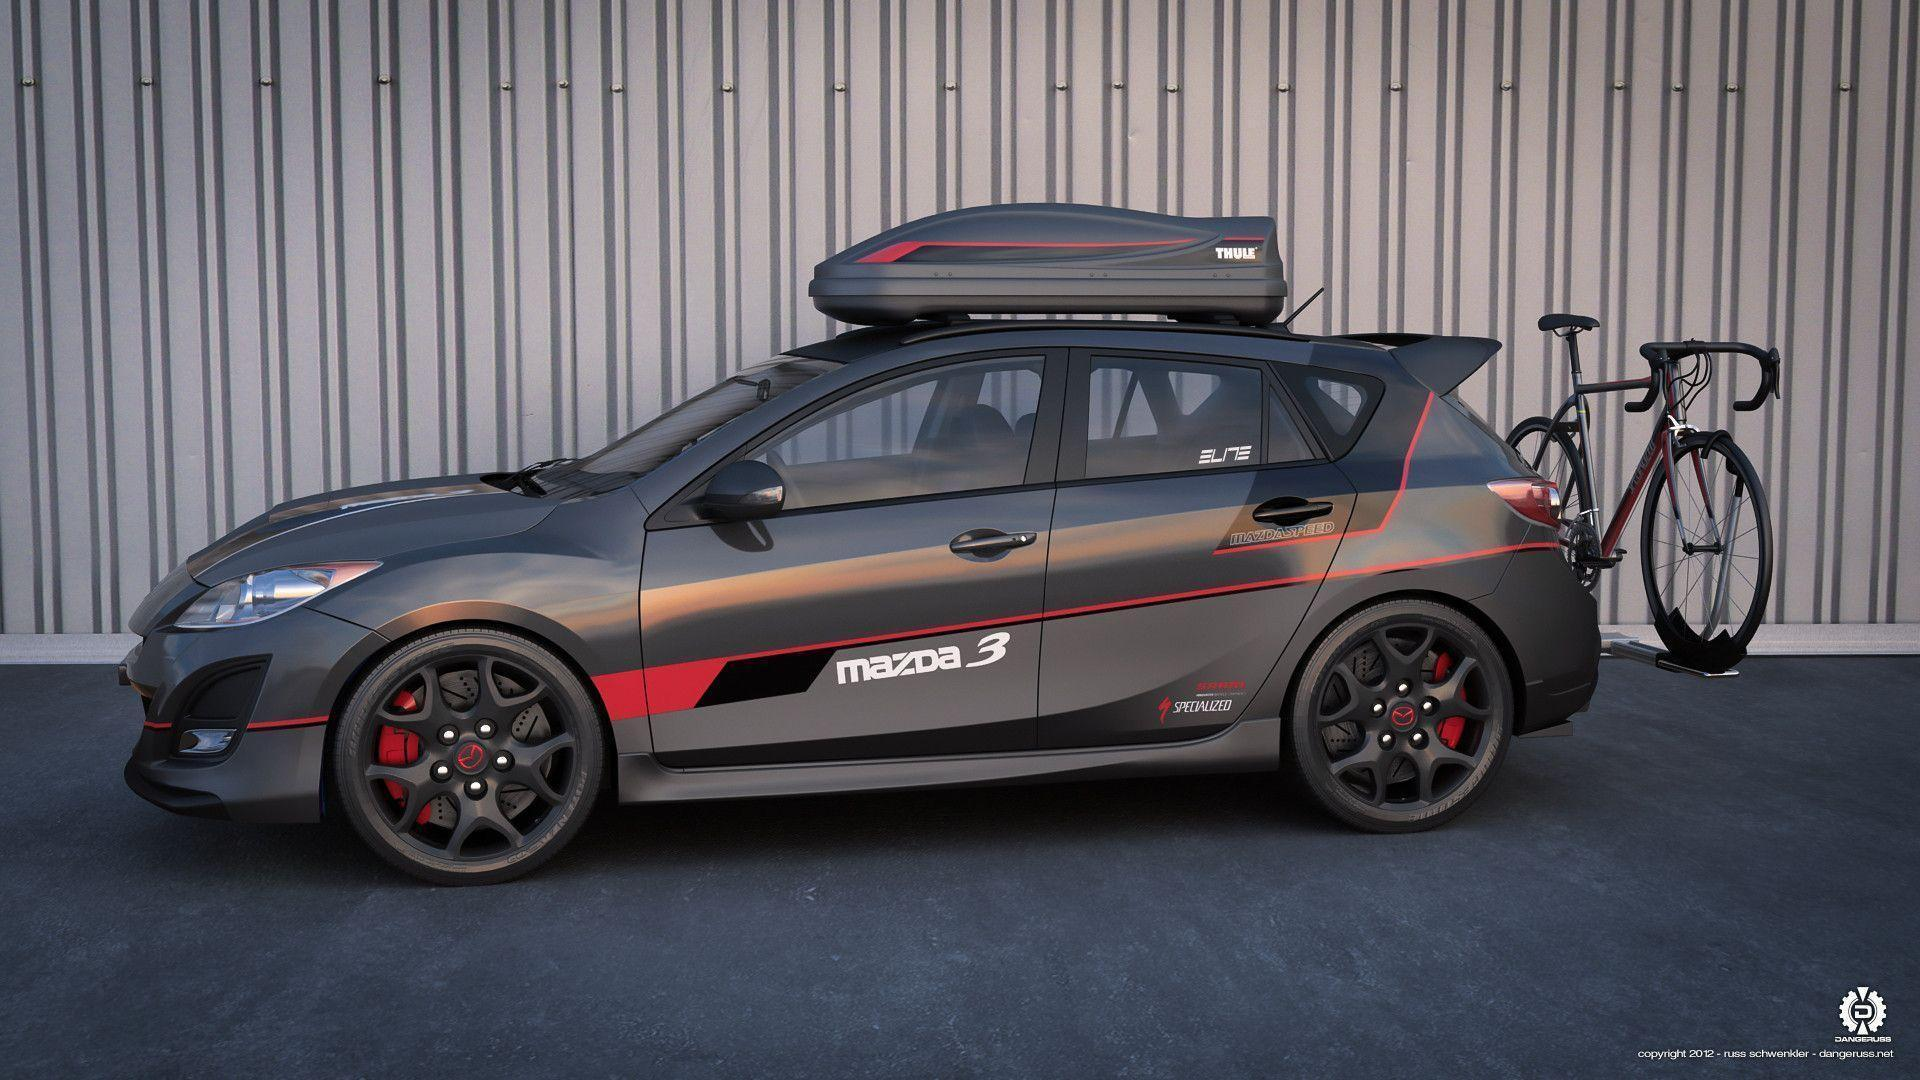 Mazdaspeed 3 cycling edition 01 by dangeruss